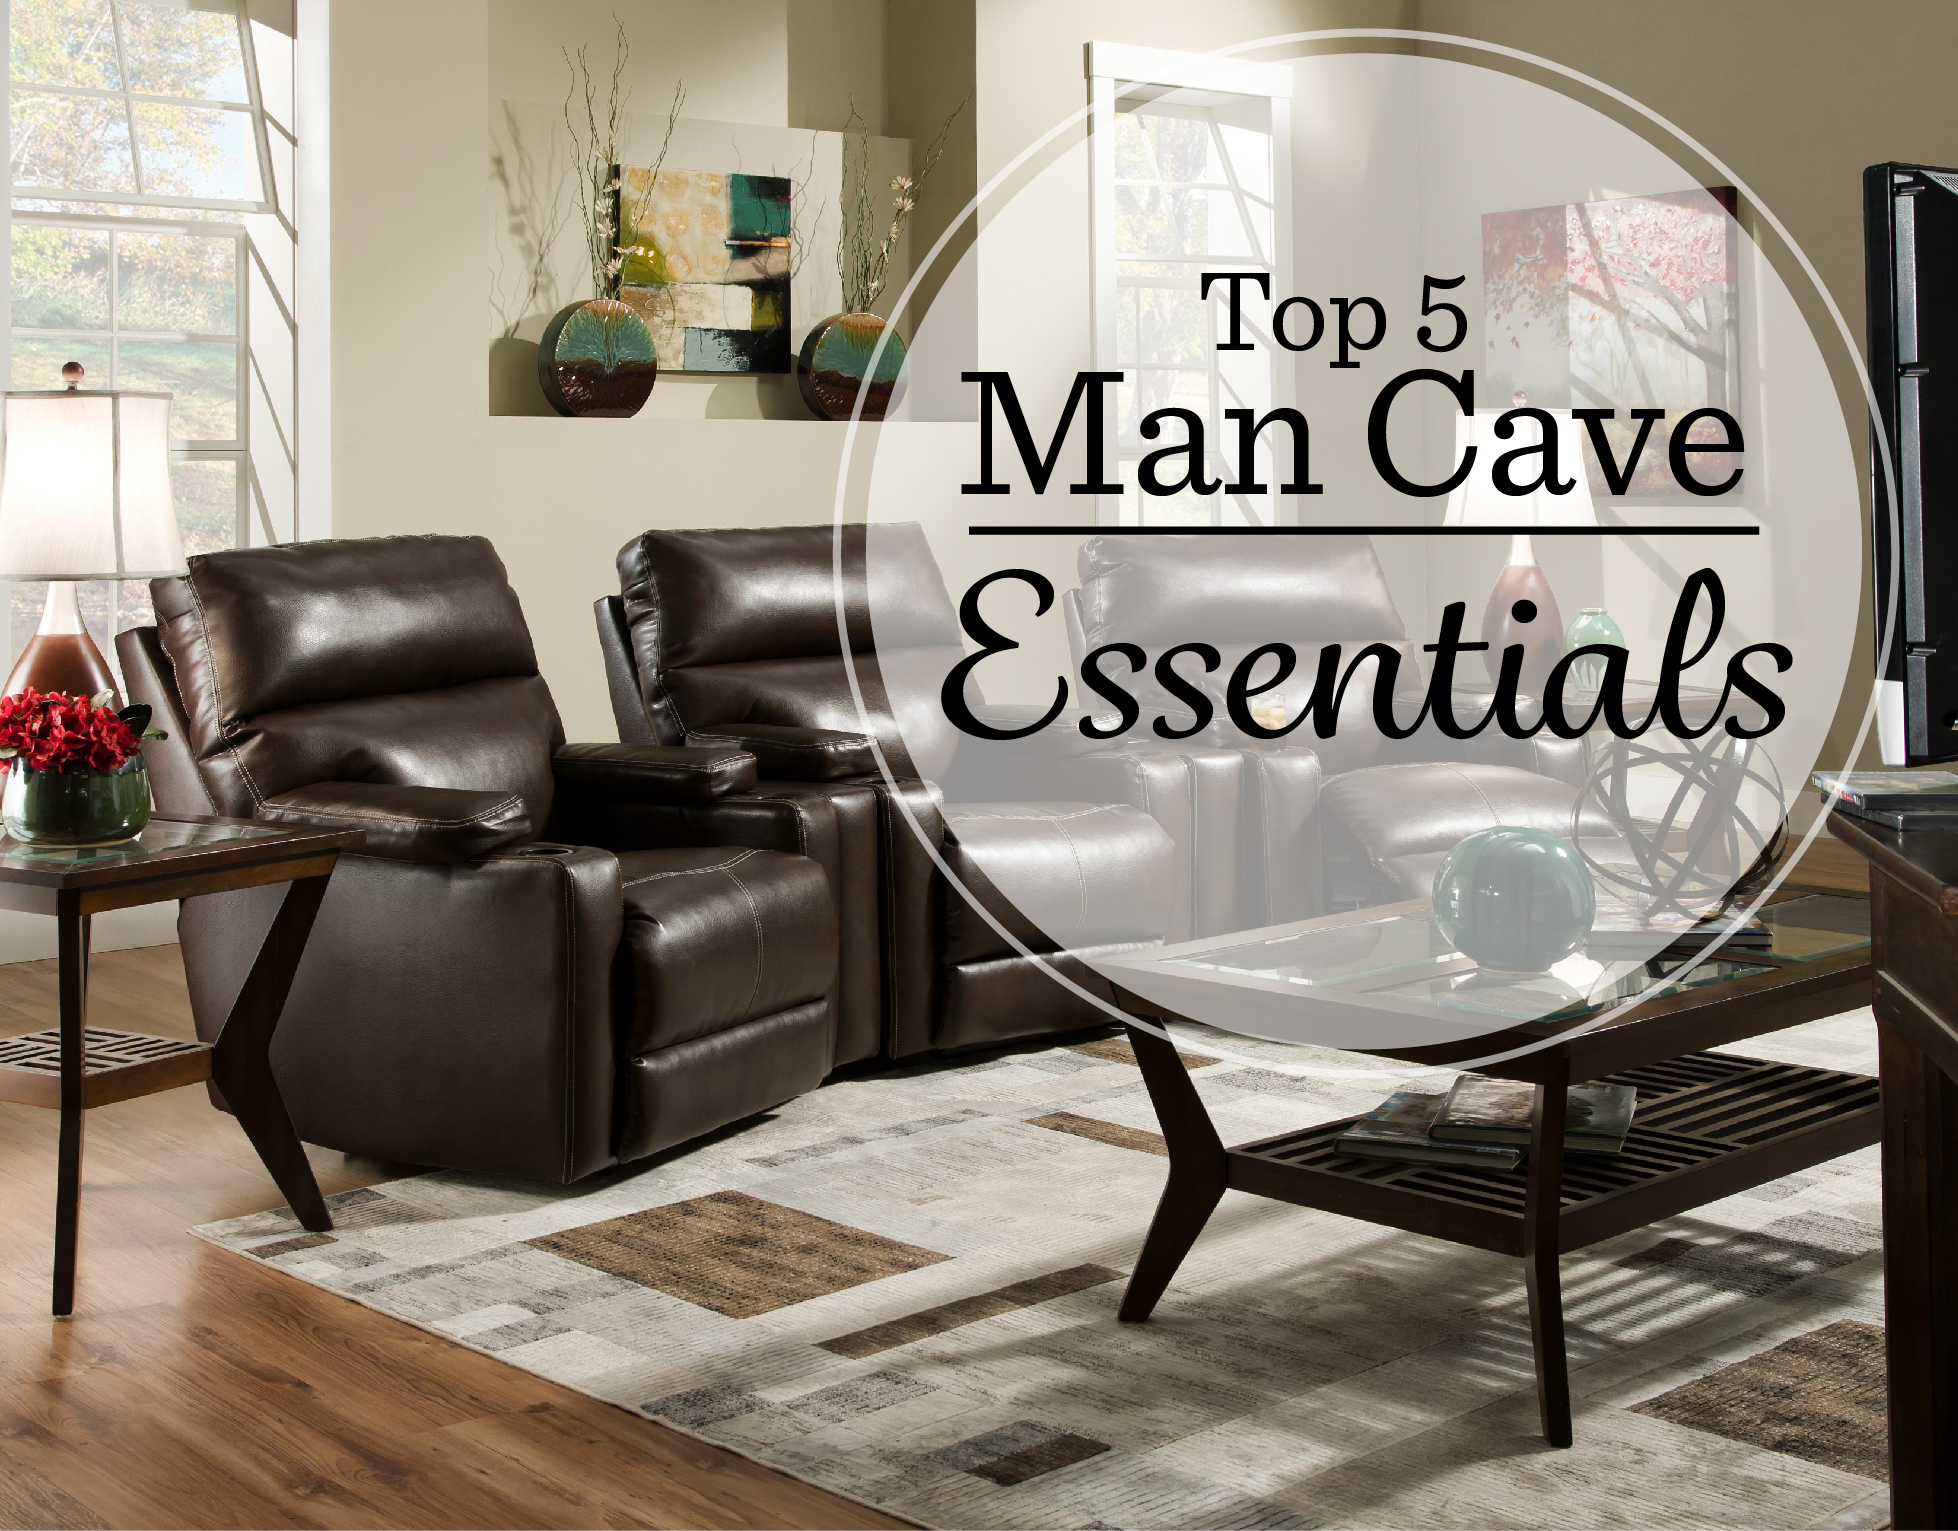 Diy Man Cave Essentials : The top essentials for man cave stylin with sheely s